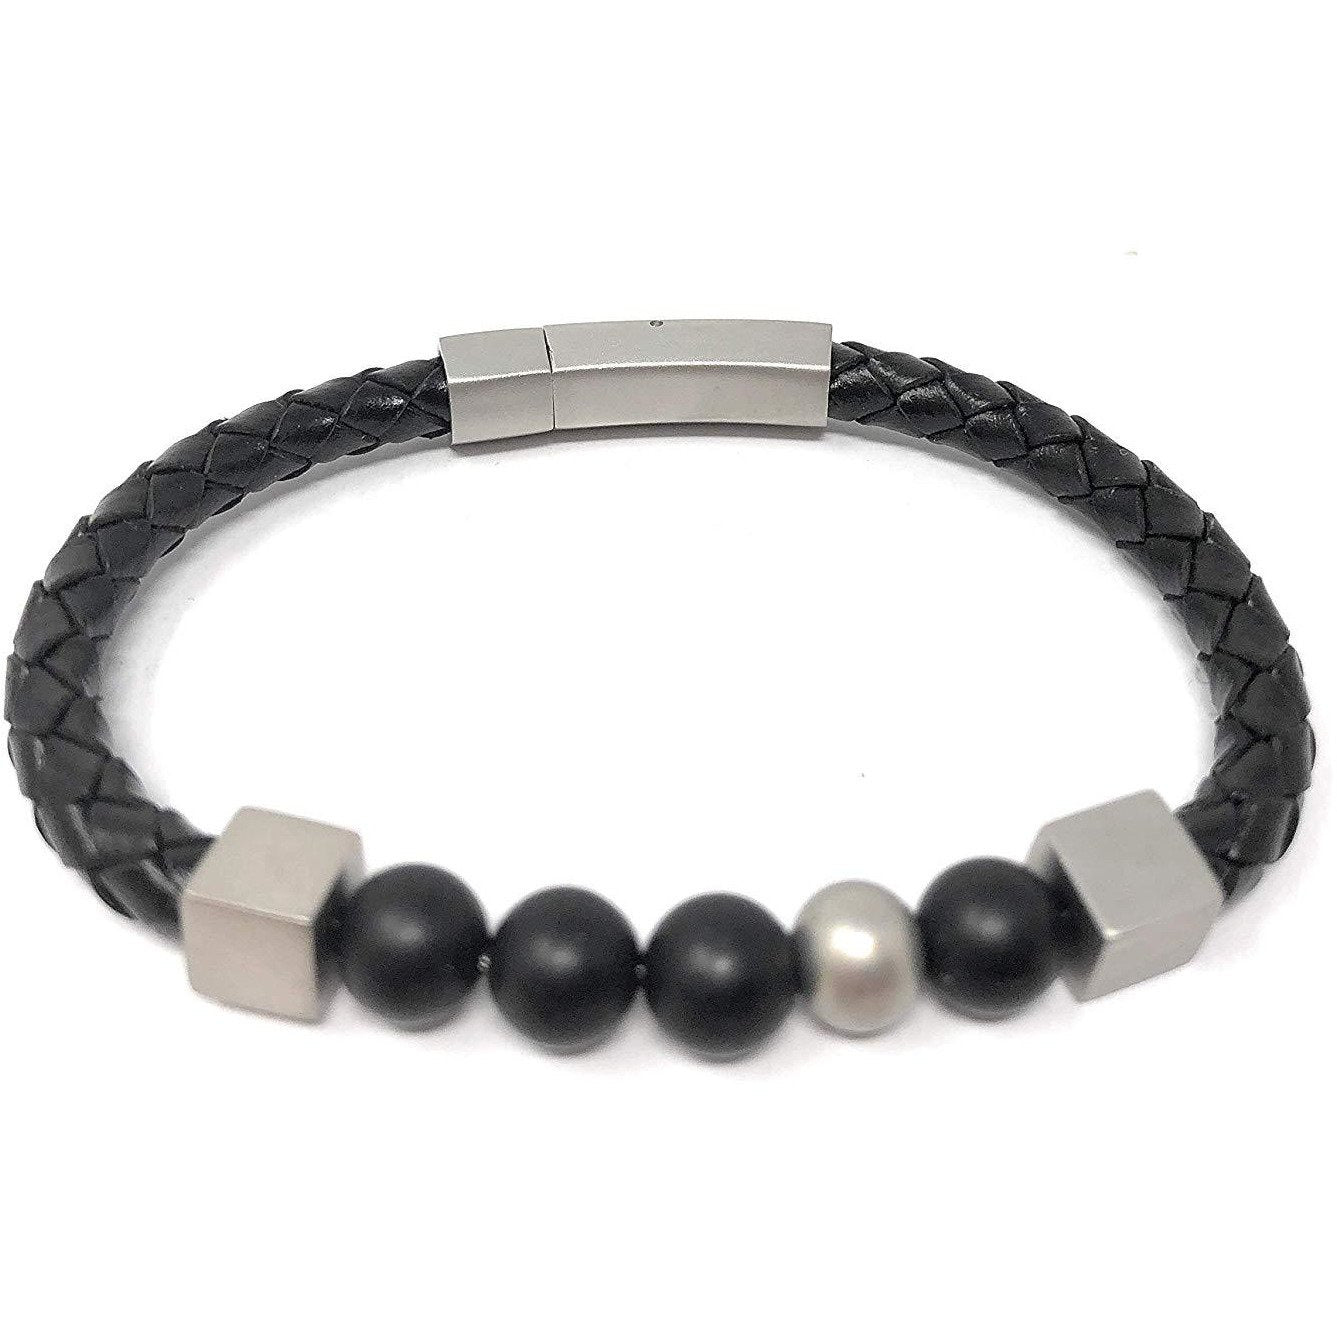 Beaded Unisex Leather Bracelet in a Luxury Gift Box.